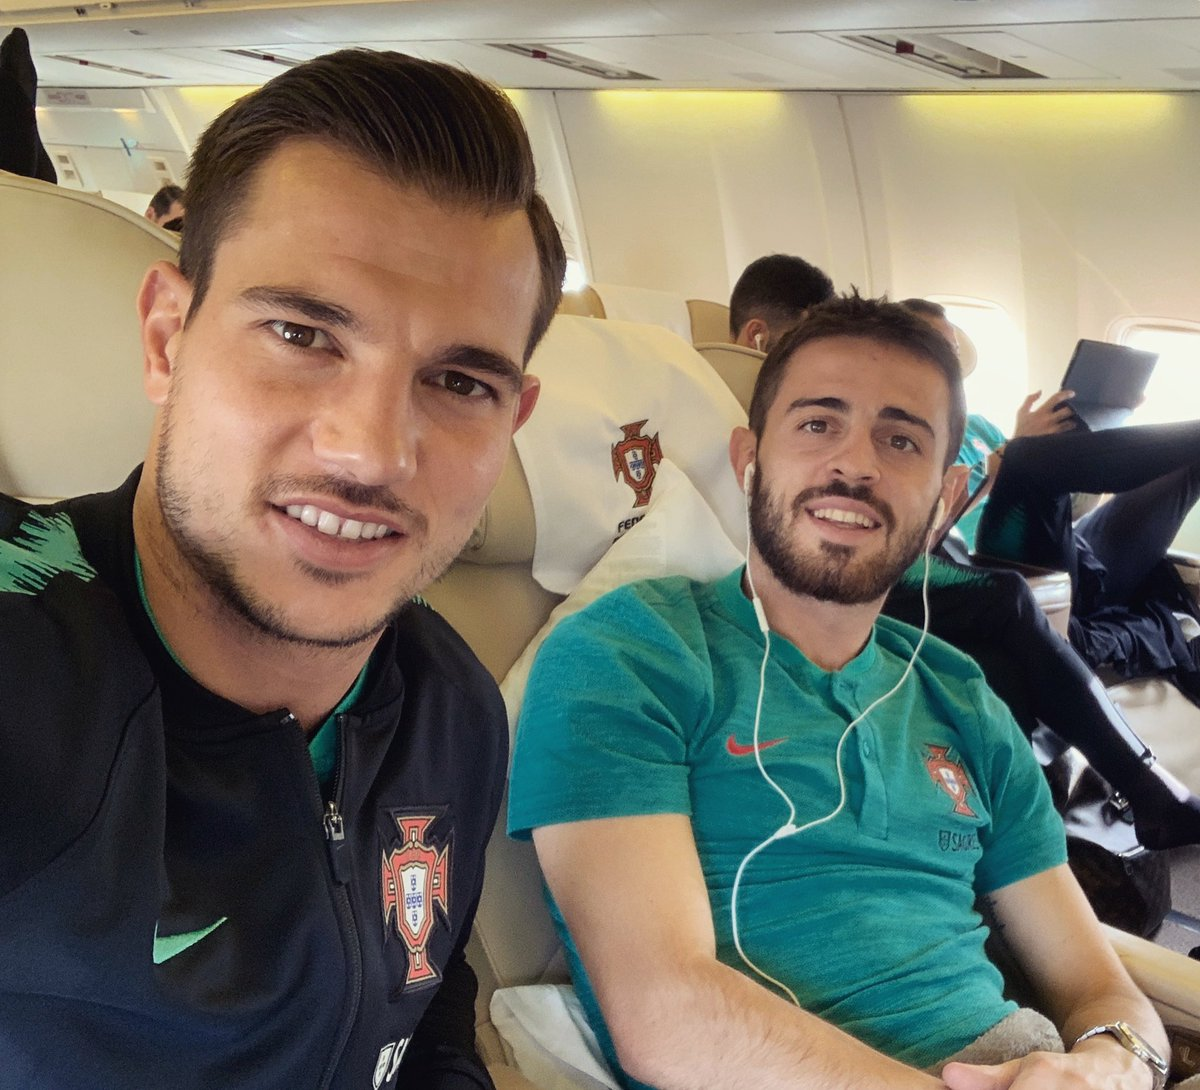 Off to Milano! ✈️🇵🇹🇮🇹 @selecaoportugal ✌🏼 https://t.co/YBCW7rgVa7